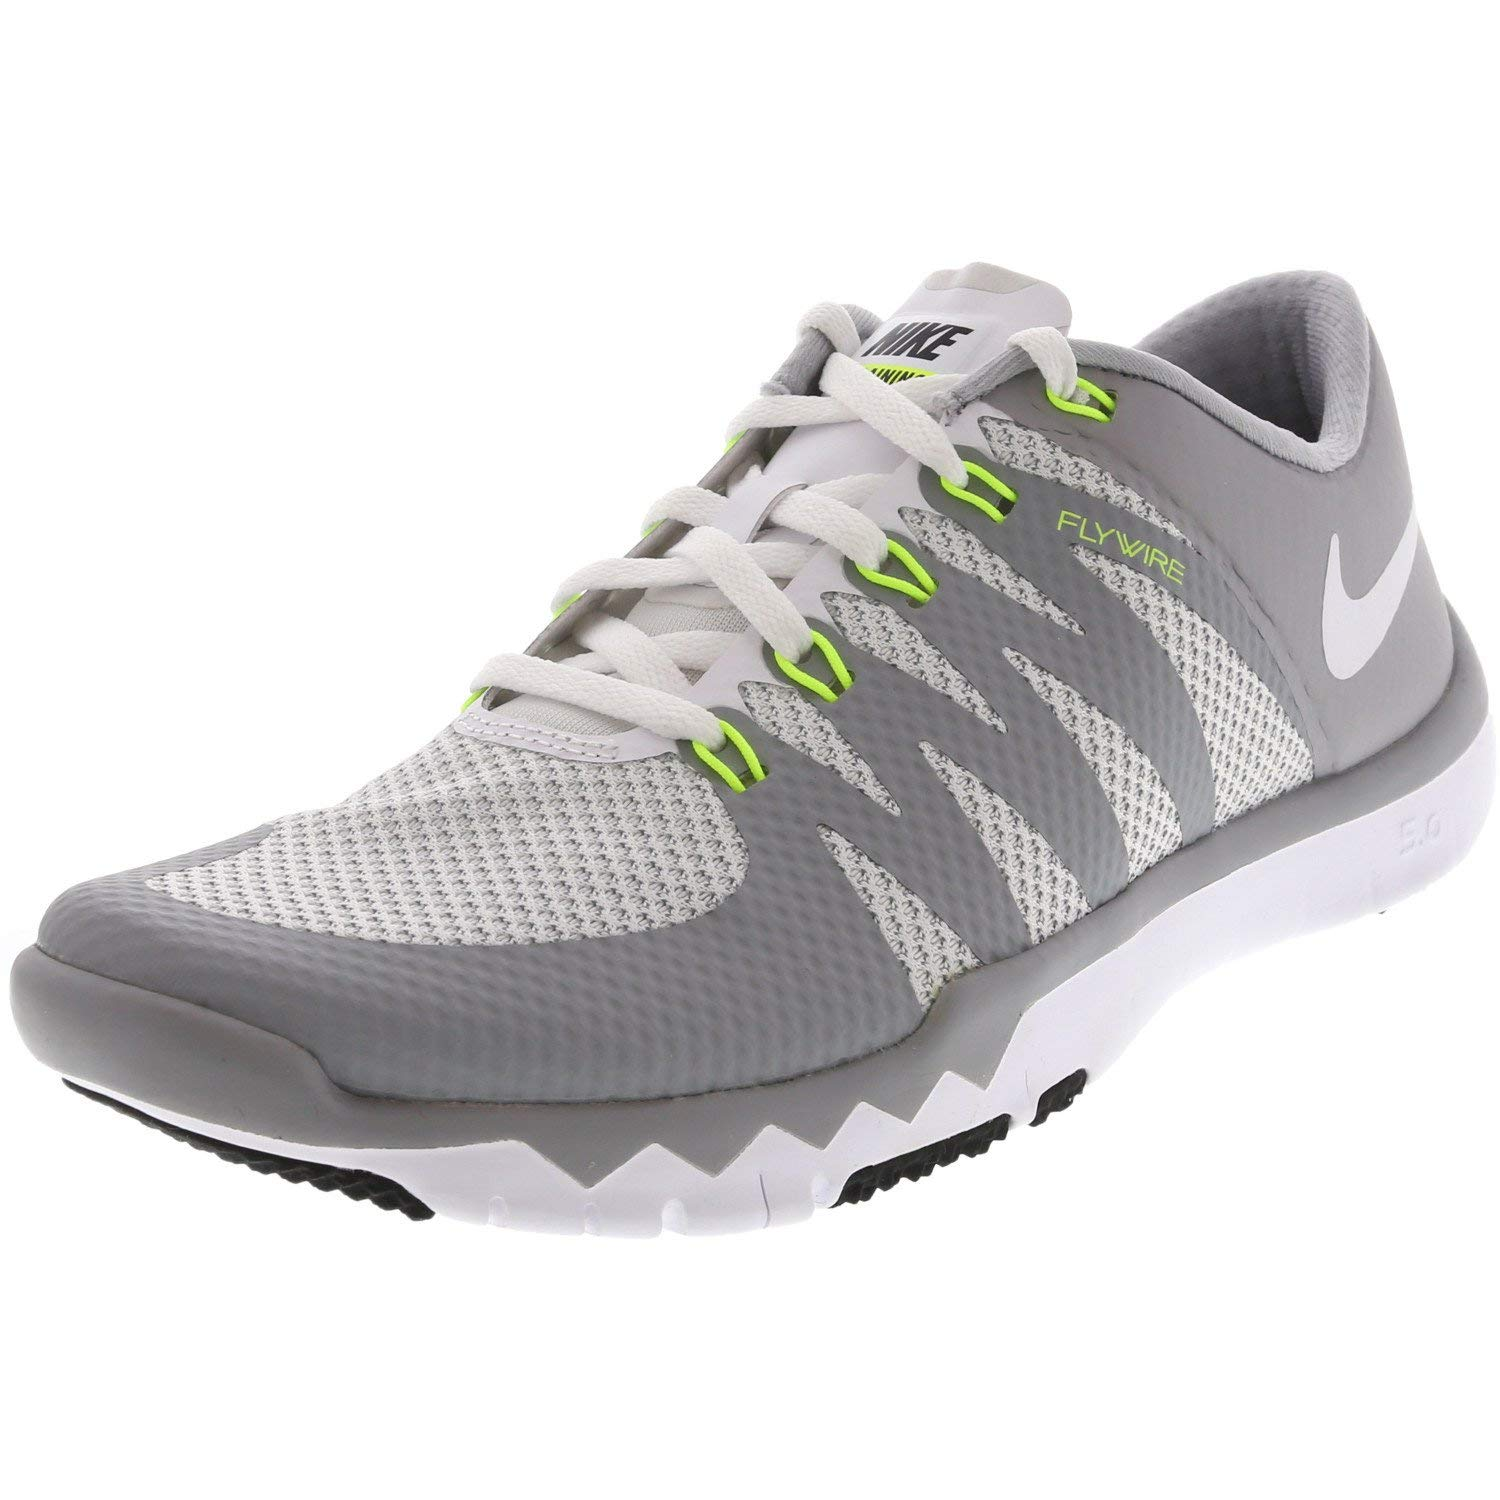 Nike Men's Free Trainer 5.0 V6 White / - Wolf Grey Ankle-High Cross Shoe 6M